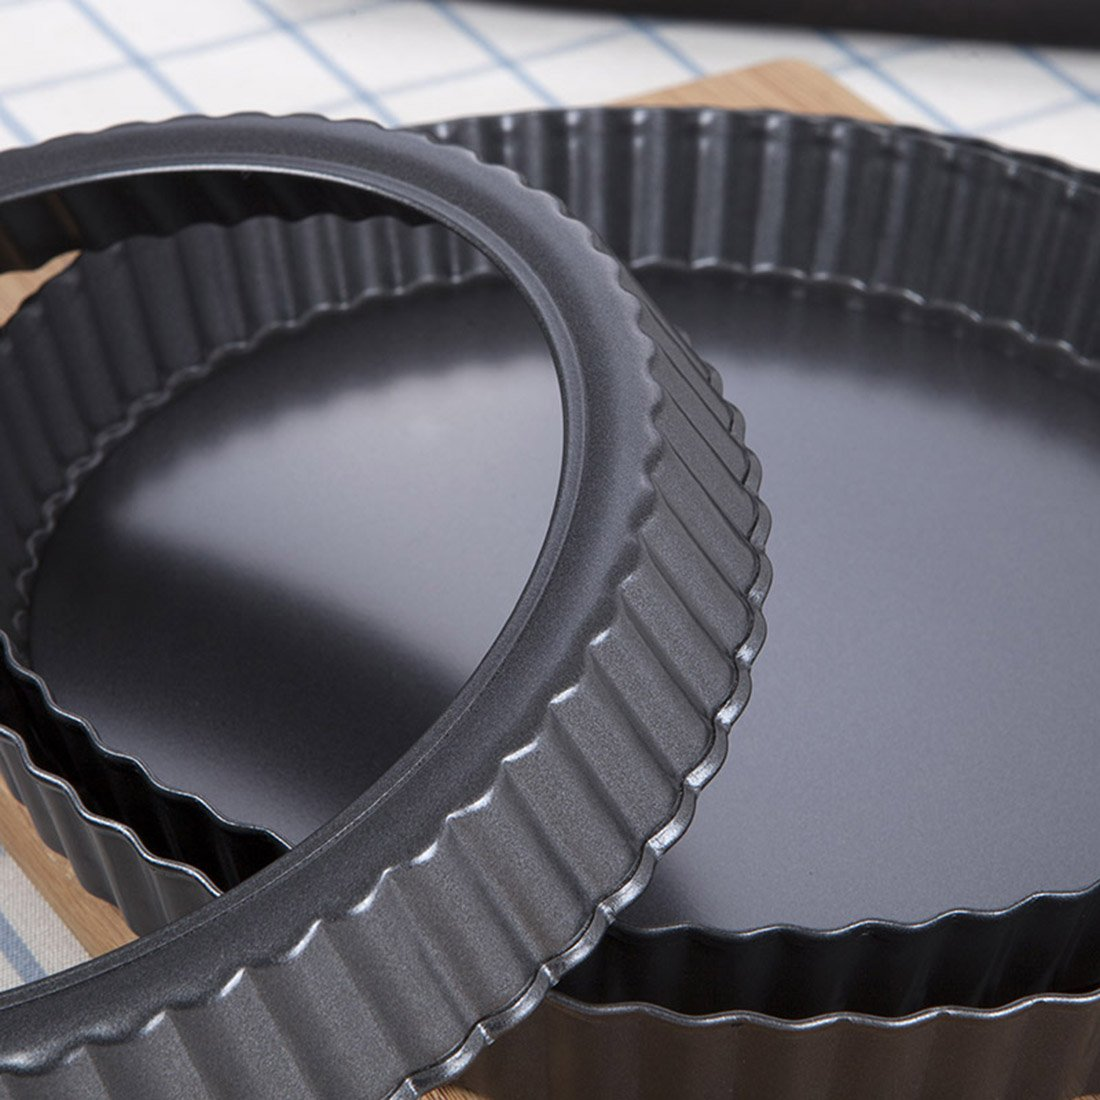 Tosnail 2 Pack Non-Stick Quiche Pan Tart Pan with Removable Loose Bottom - 9 Inch by Tosnail (Image #3)